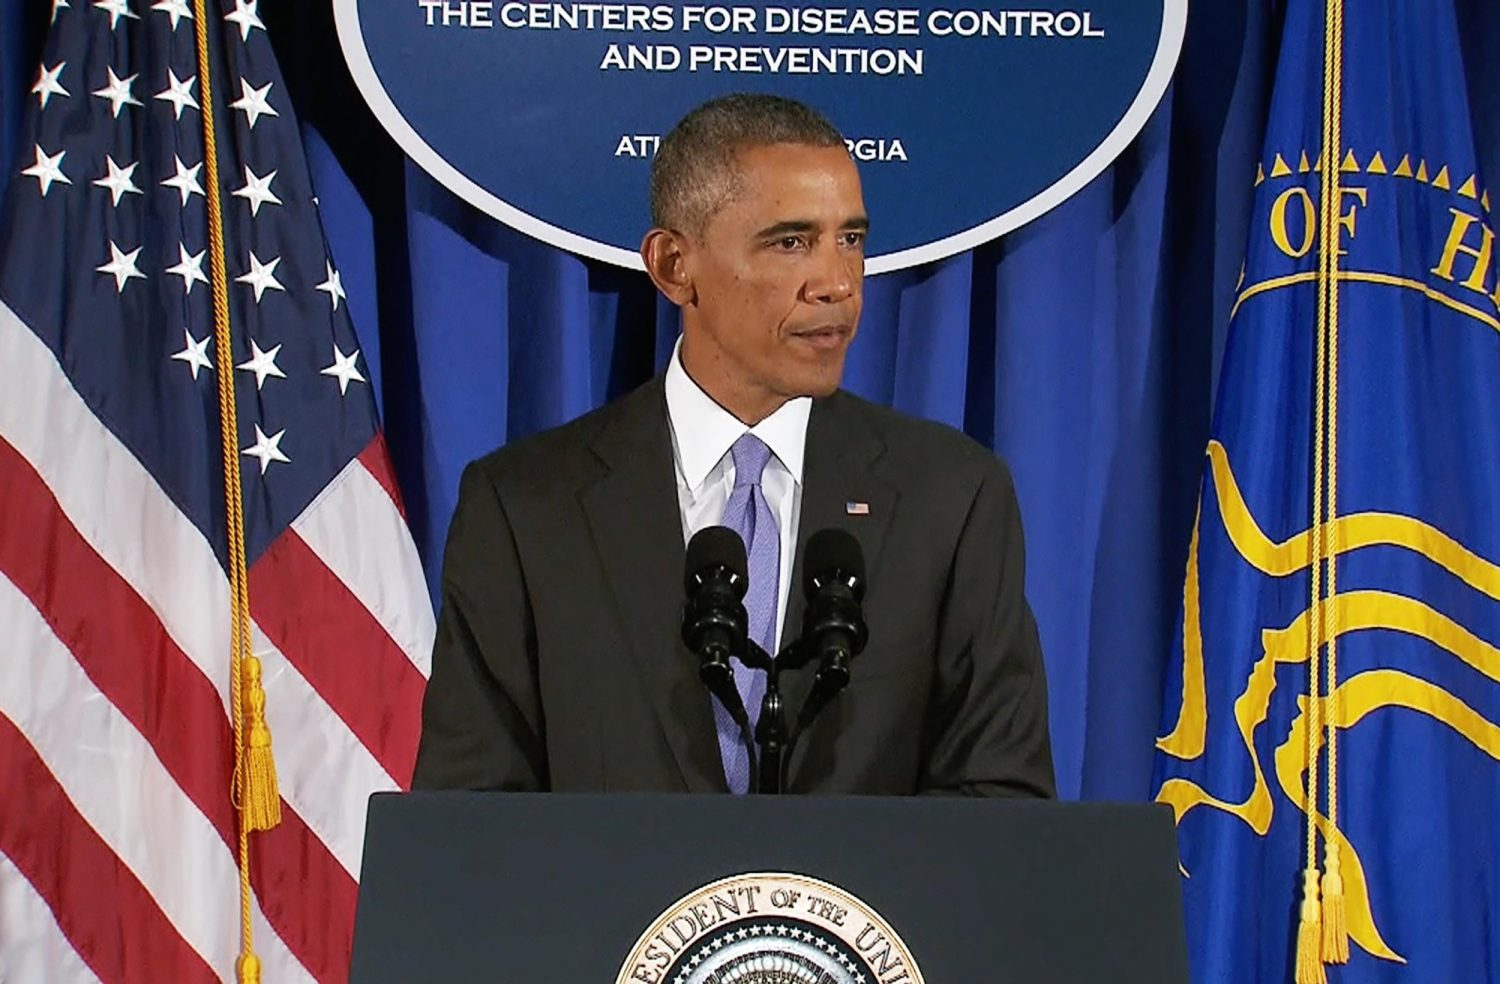 President+Obama%27s+Actions+Towards+Ebola